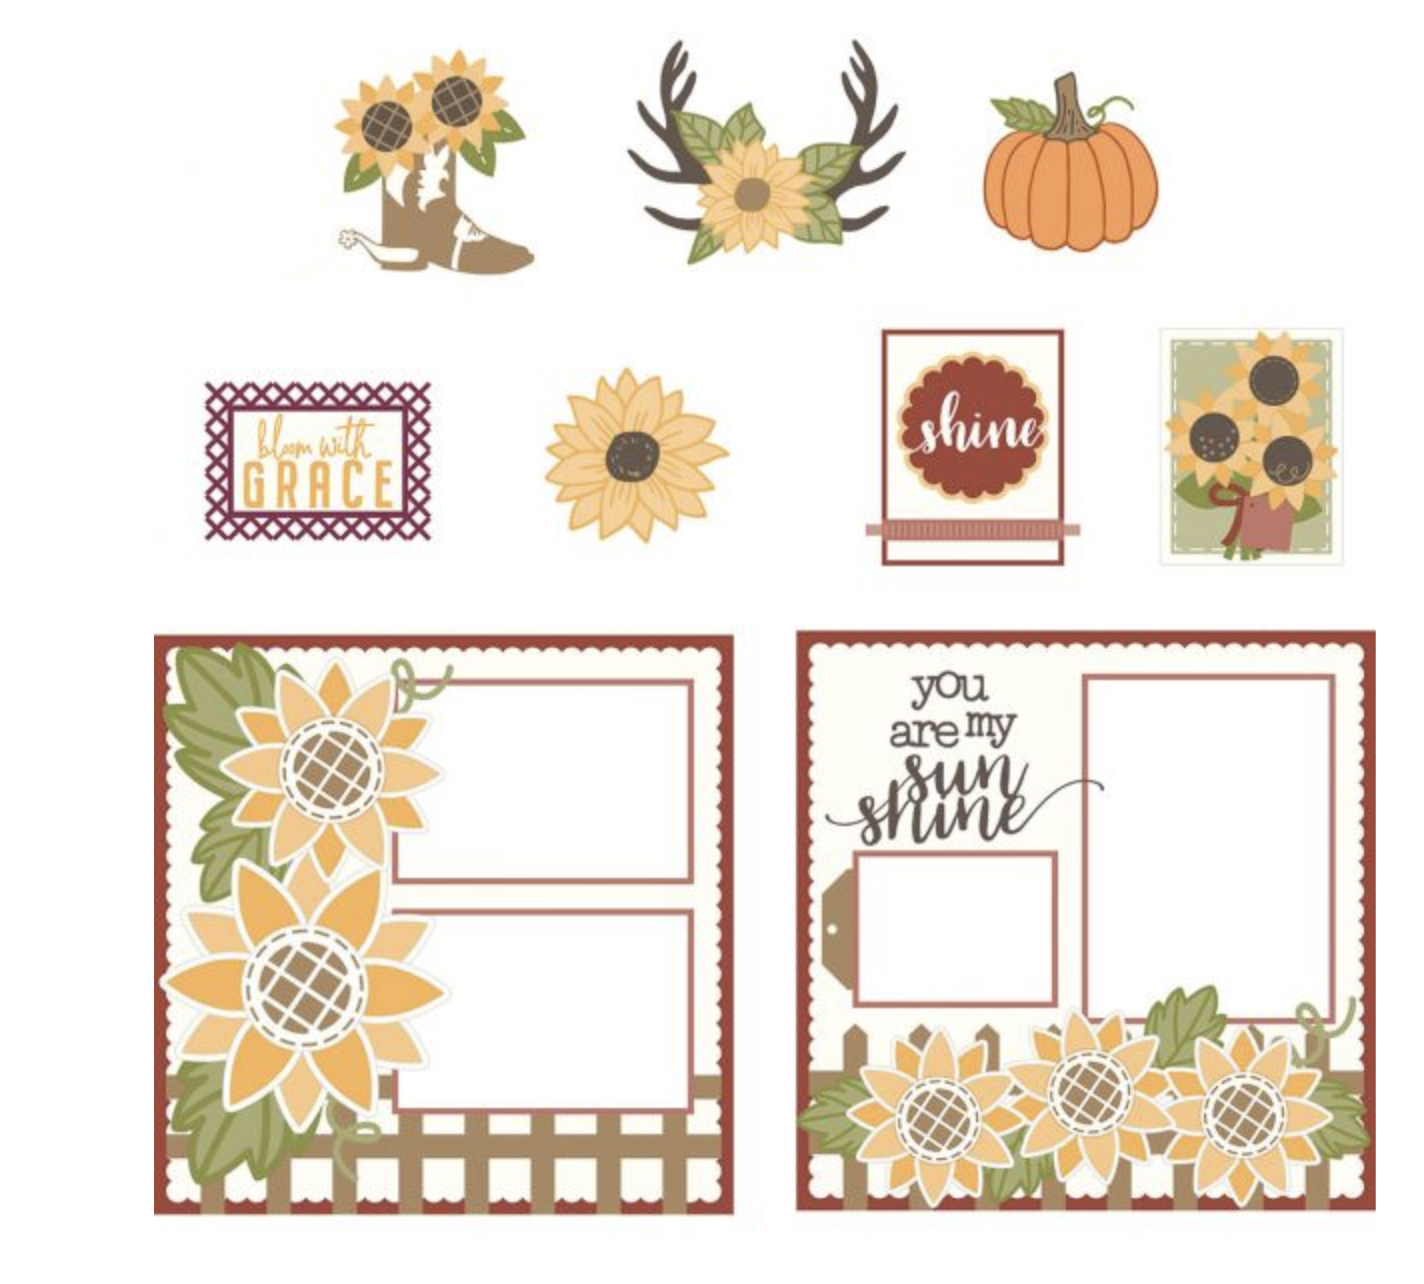 Super cute!!  Brand new CTMH Cricut Image set - Bloom in Grace.  Just $9.99 Only available through my consultant link!!  Go to my website (link in bio) then scroll down to Cricut icon at the bottom of the page.  You will not be able to find in DS any other way.    BONUS - Cricut Access Premium members save 50%!!!!  #ctmh #closetomyheart #scrapbooking #cardmaking  #stamping #diy #createyourworld #handmadecard #createyourworld #cricut #designspace #makersgonnamake